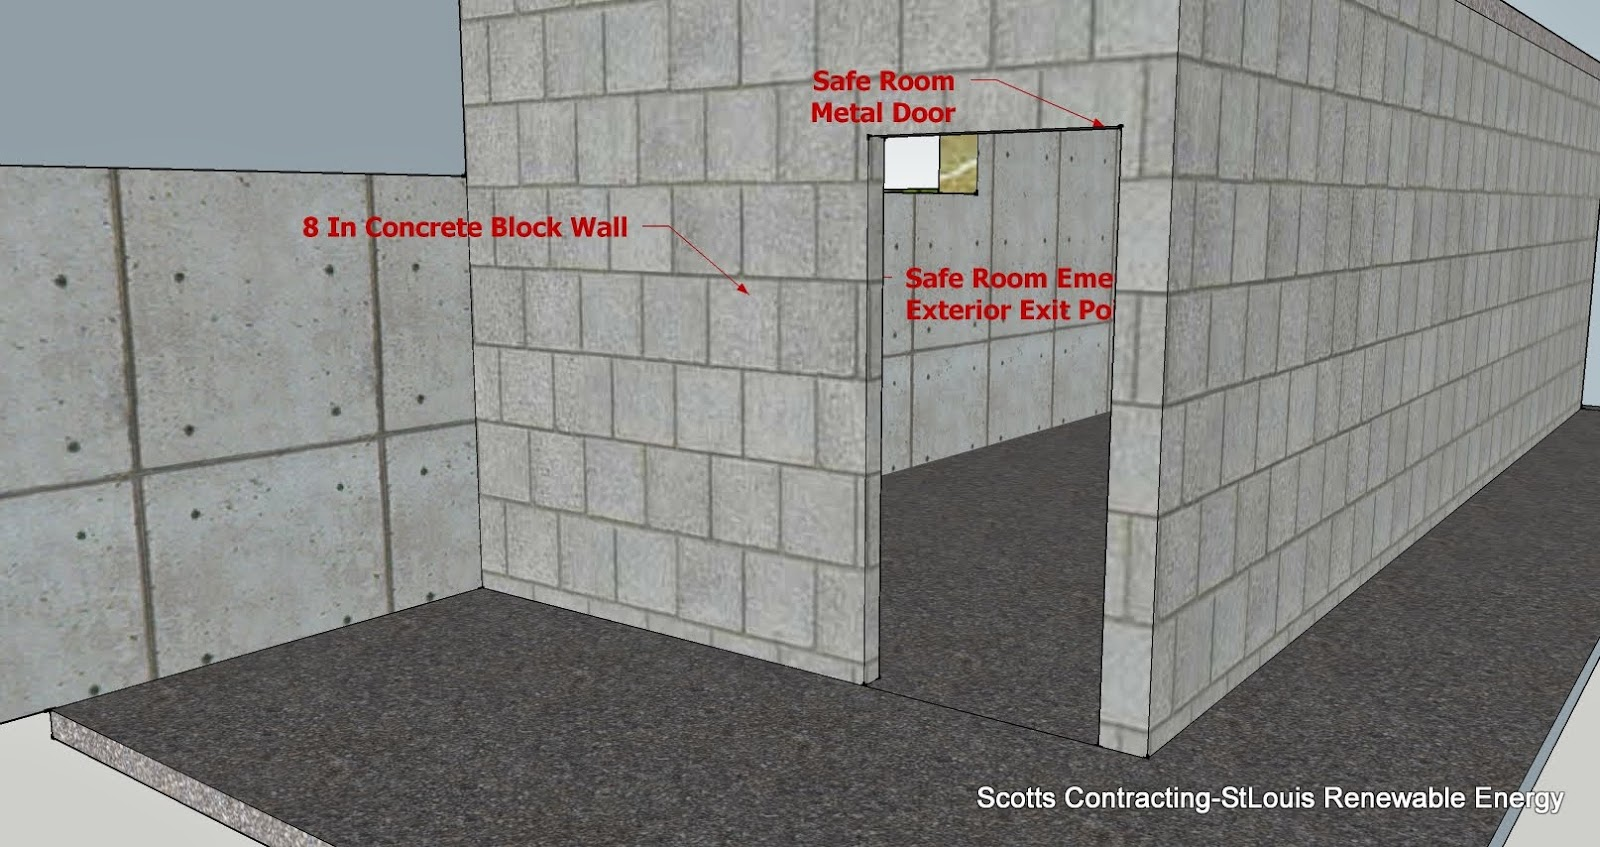 Stlouis Renewable Energy Tornado Safe Room Design